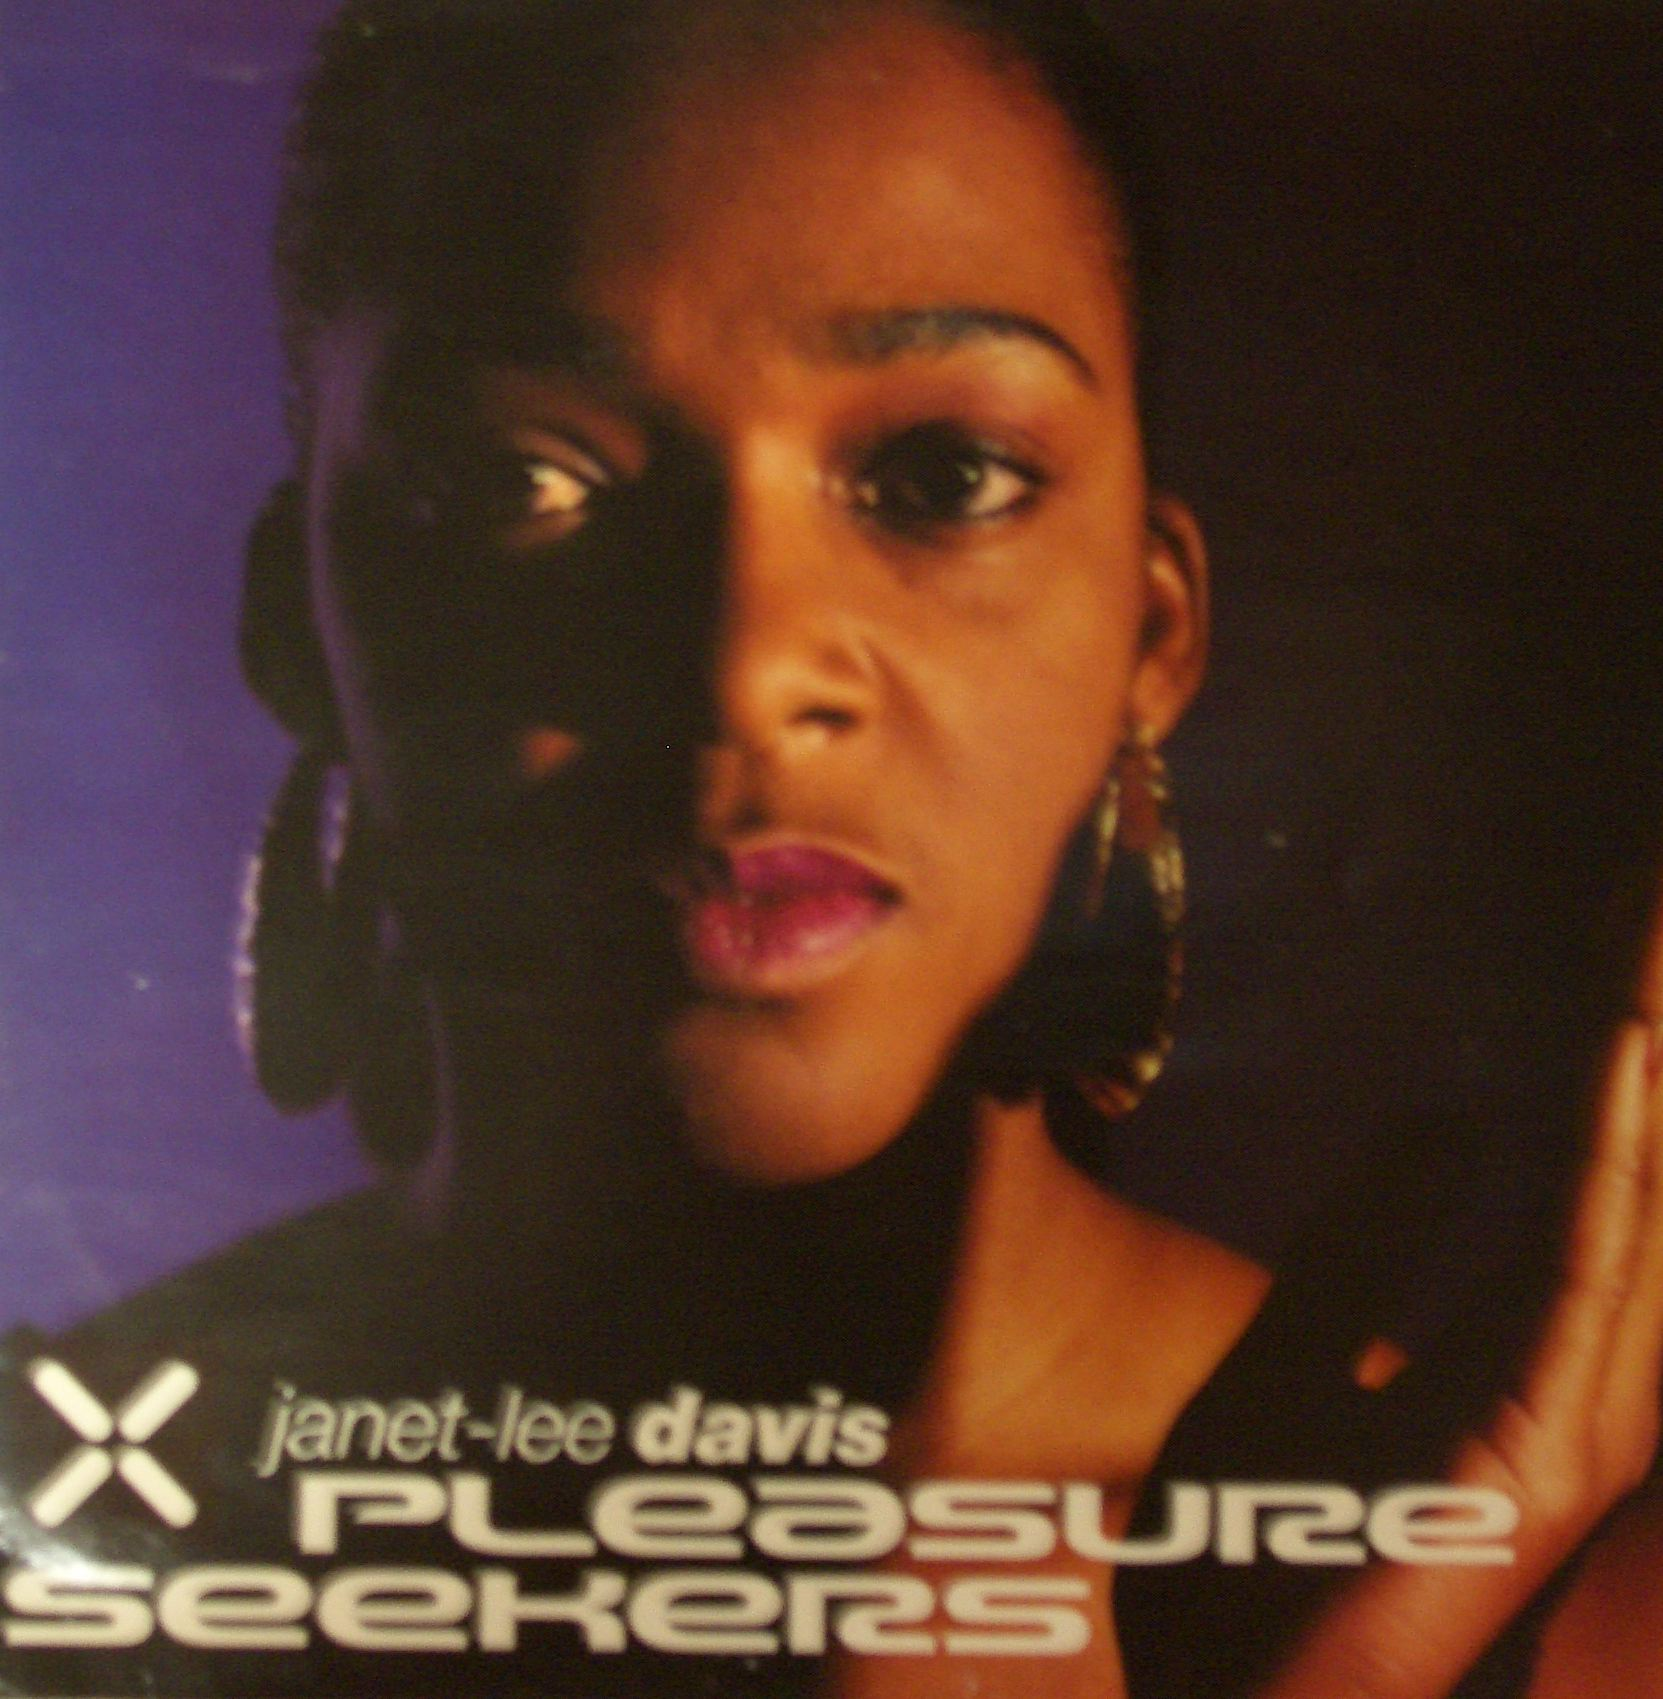 JANET-LEE DAVIS / PLEASURE SEEKERS